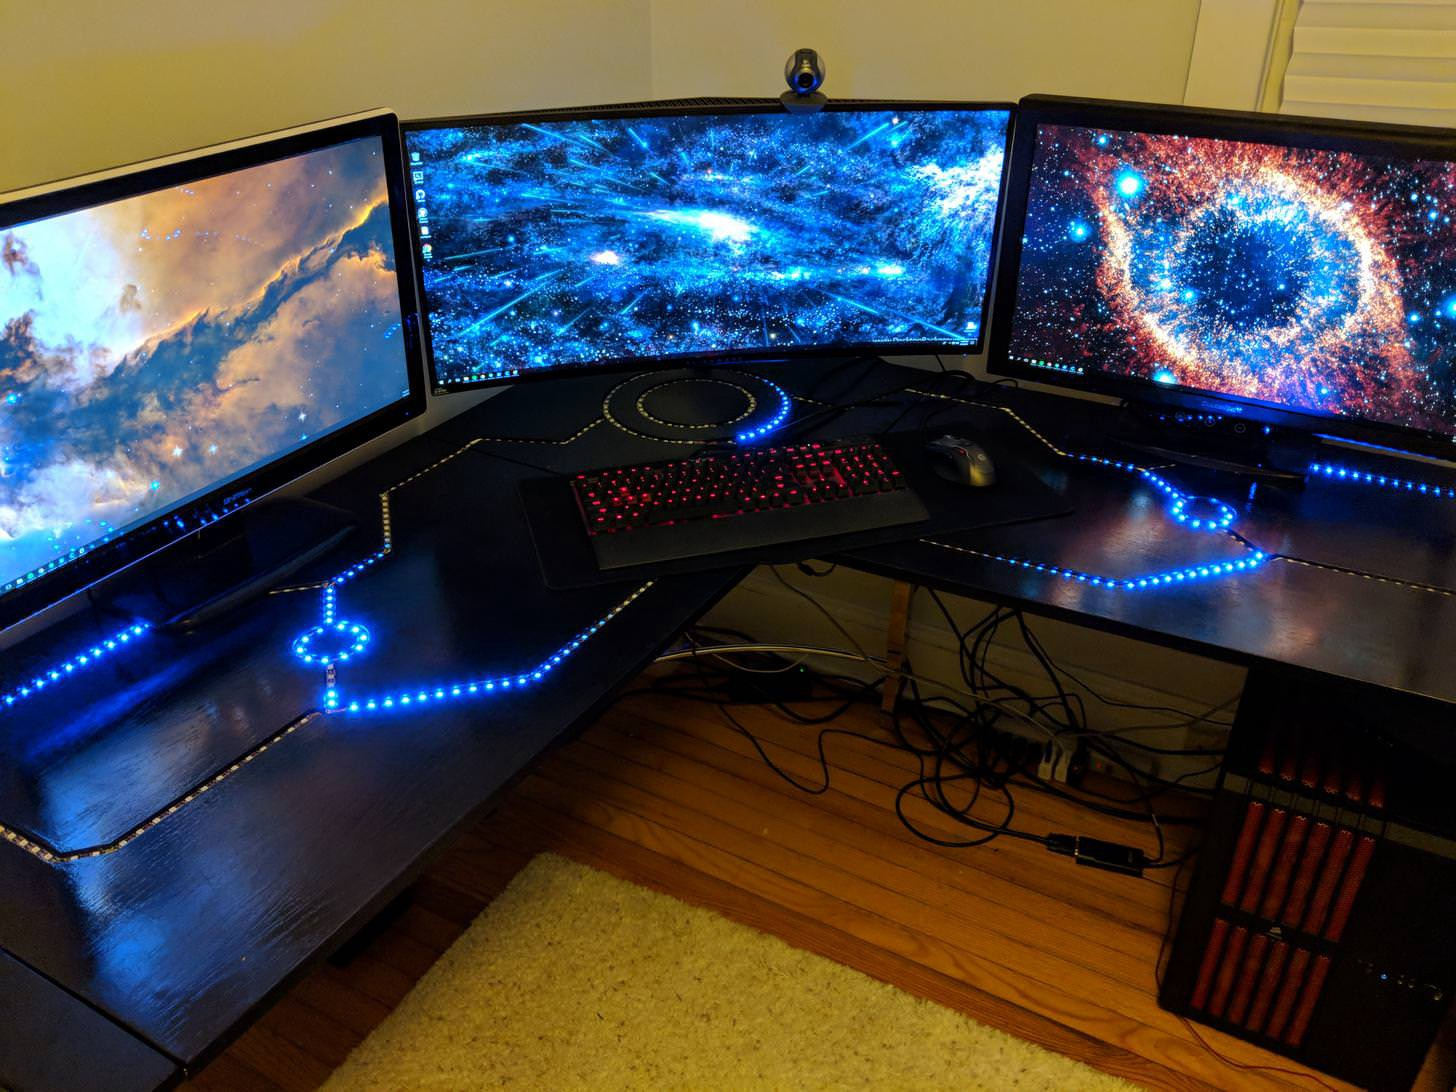 Tron Inspired Desk Made From Hundreds Of Leds And A Raspberry Pi